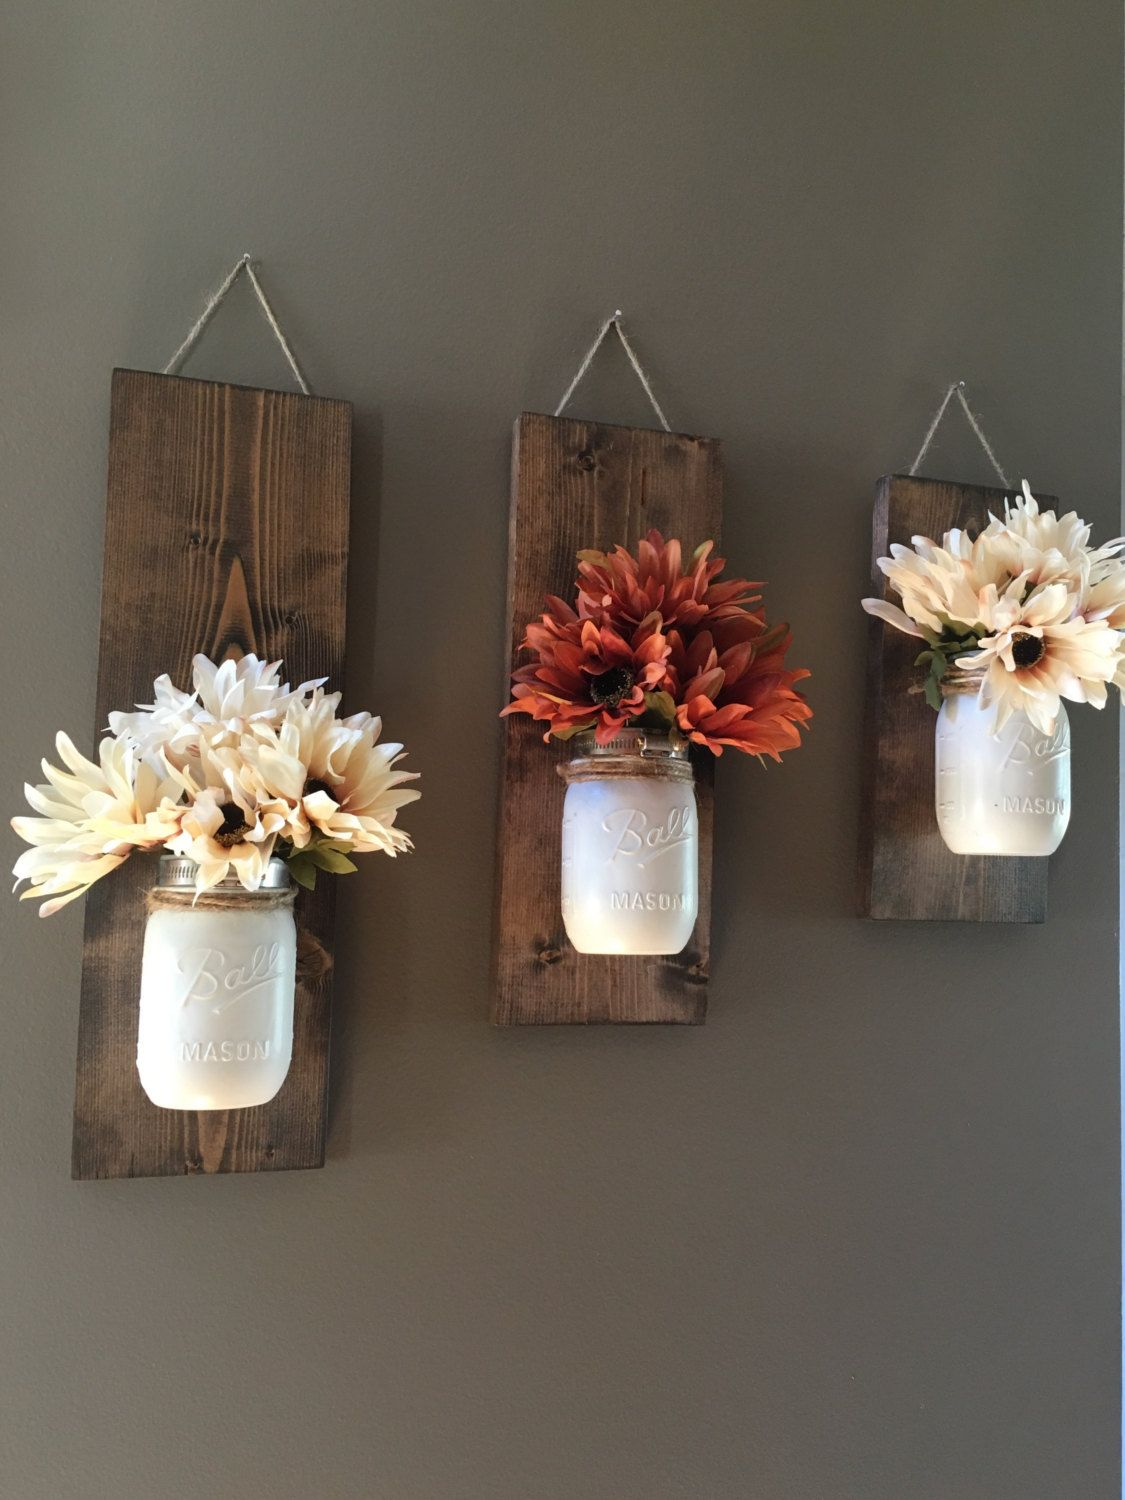 Flower Vase Ideas For Decorating Fall Wall Sconce Individual Mason Jar Sconce Flower